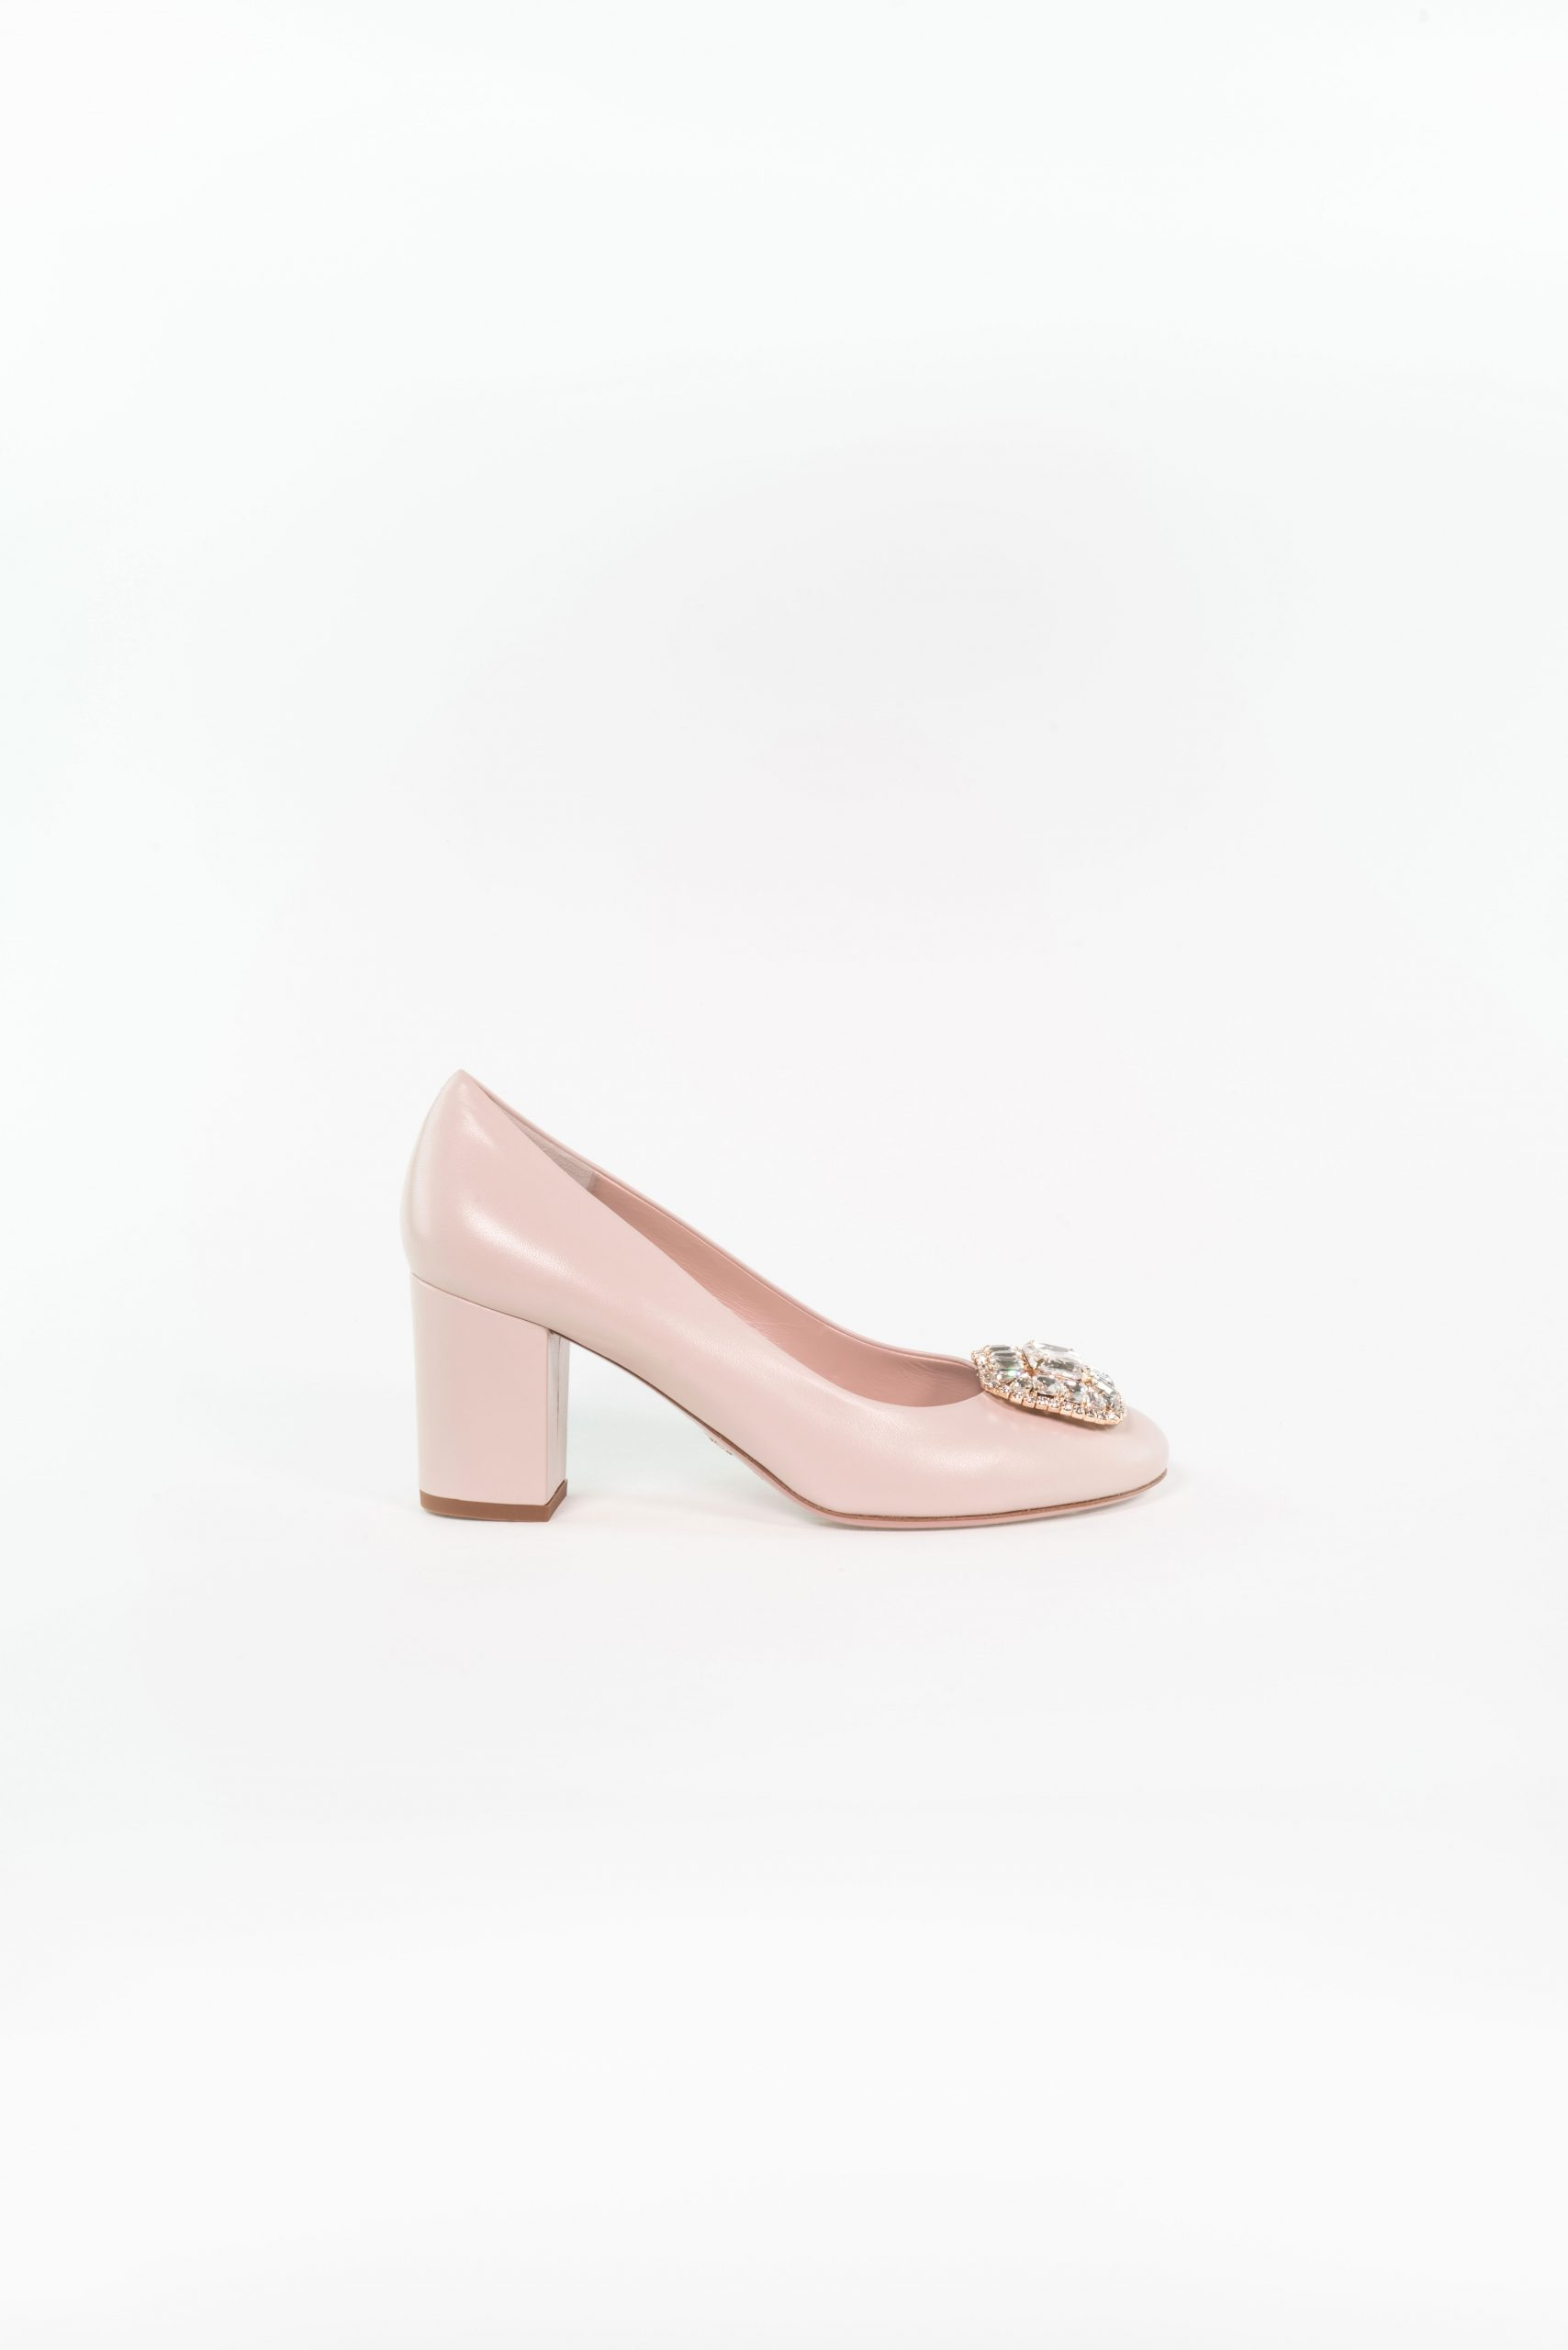 Jette LL Nude Rose